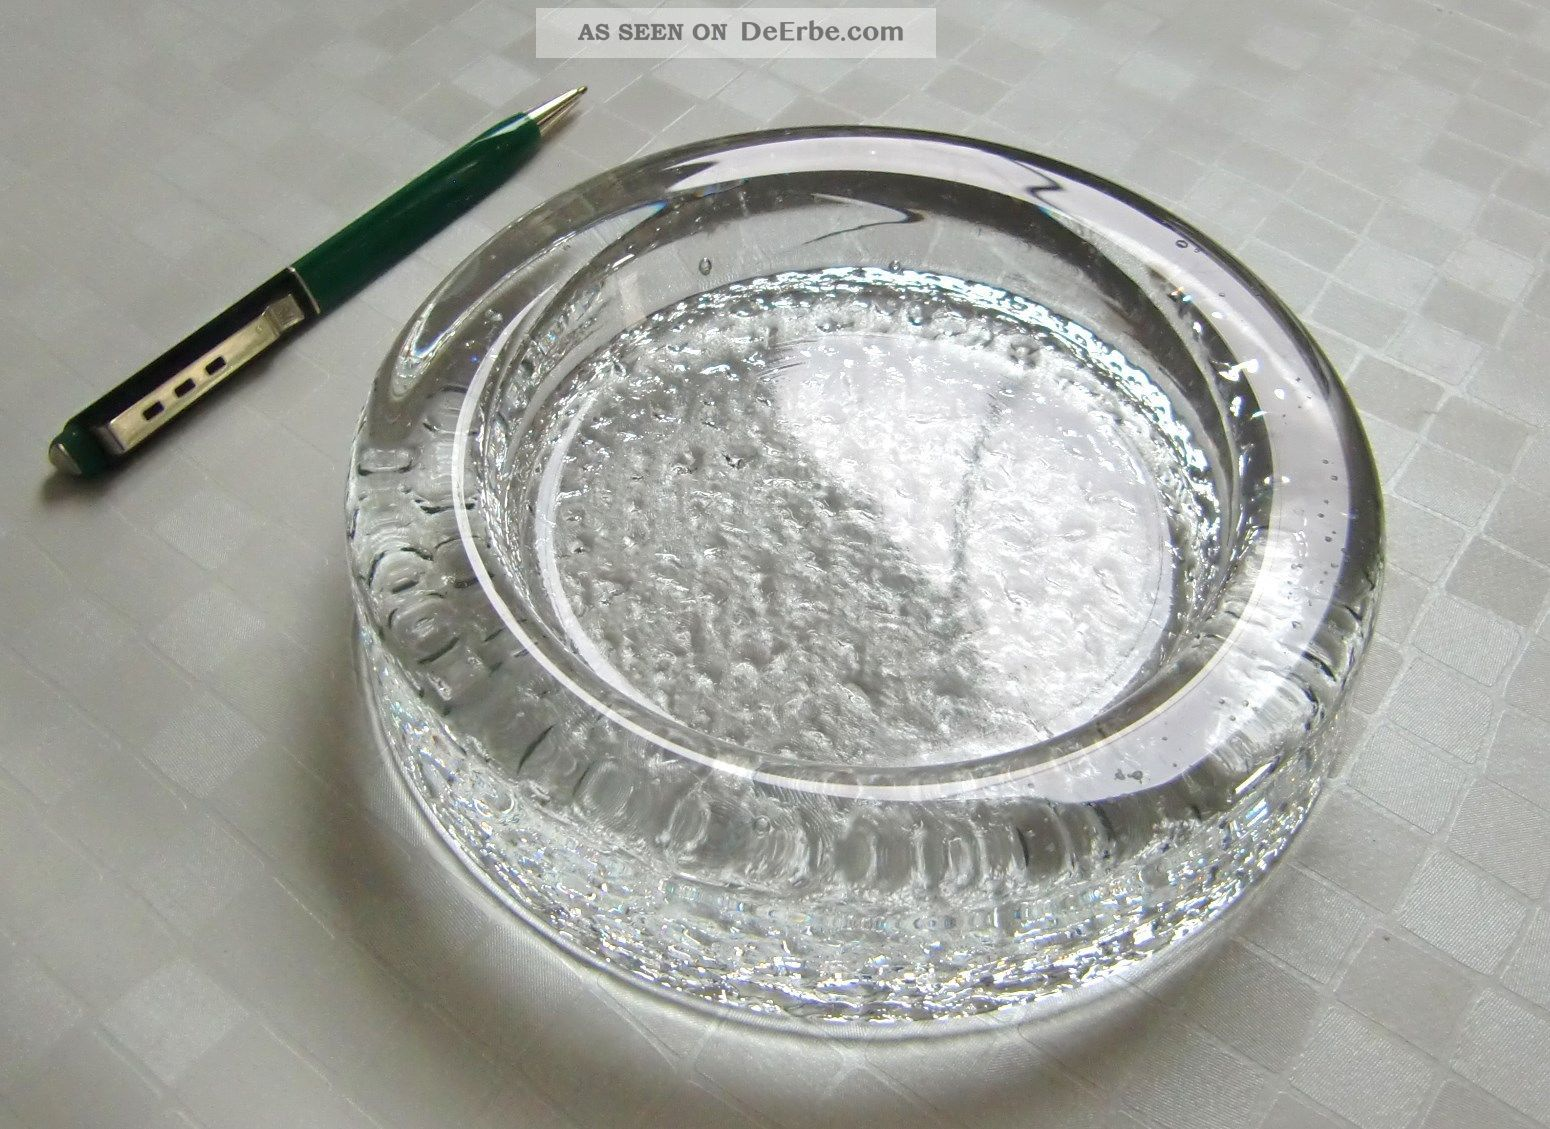 Iittala Finland 16cm Glas Aschenbecher 60er 70er Ashtray Tuhkakuppi Bubble Glass Sammlerglas Bild